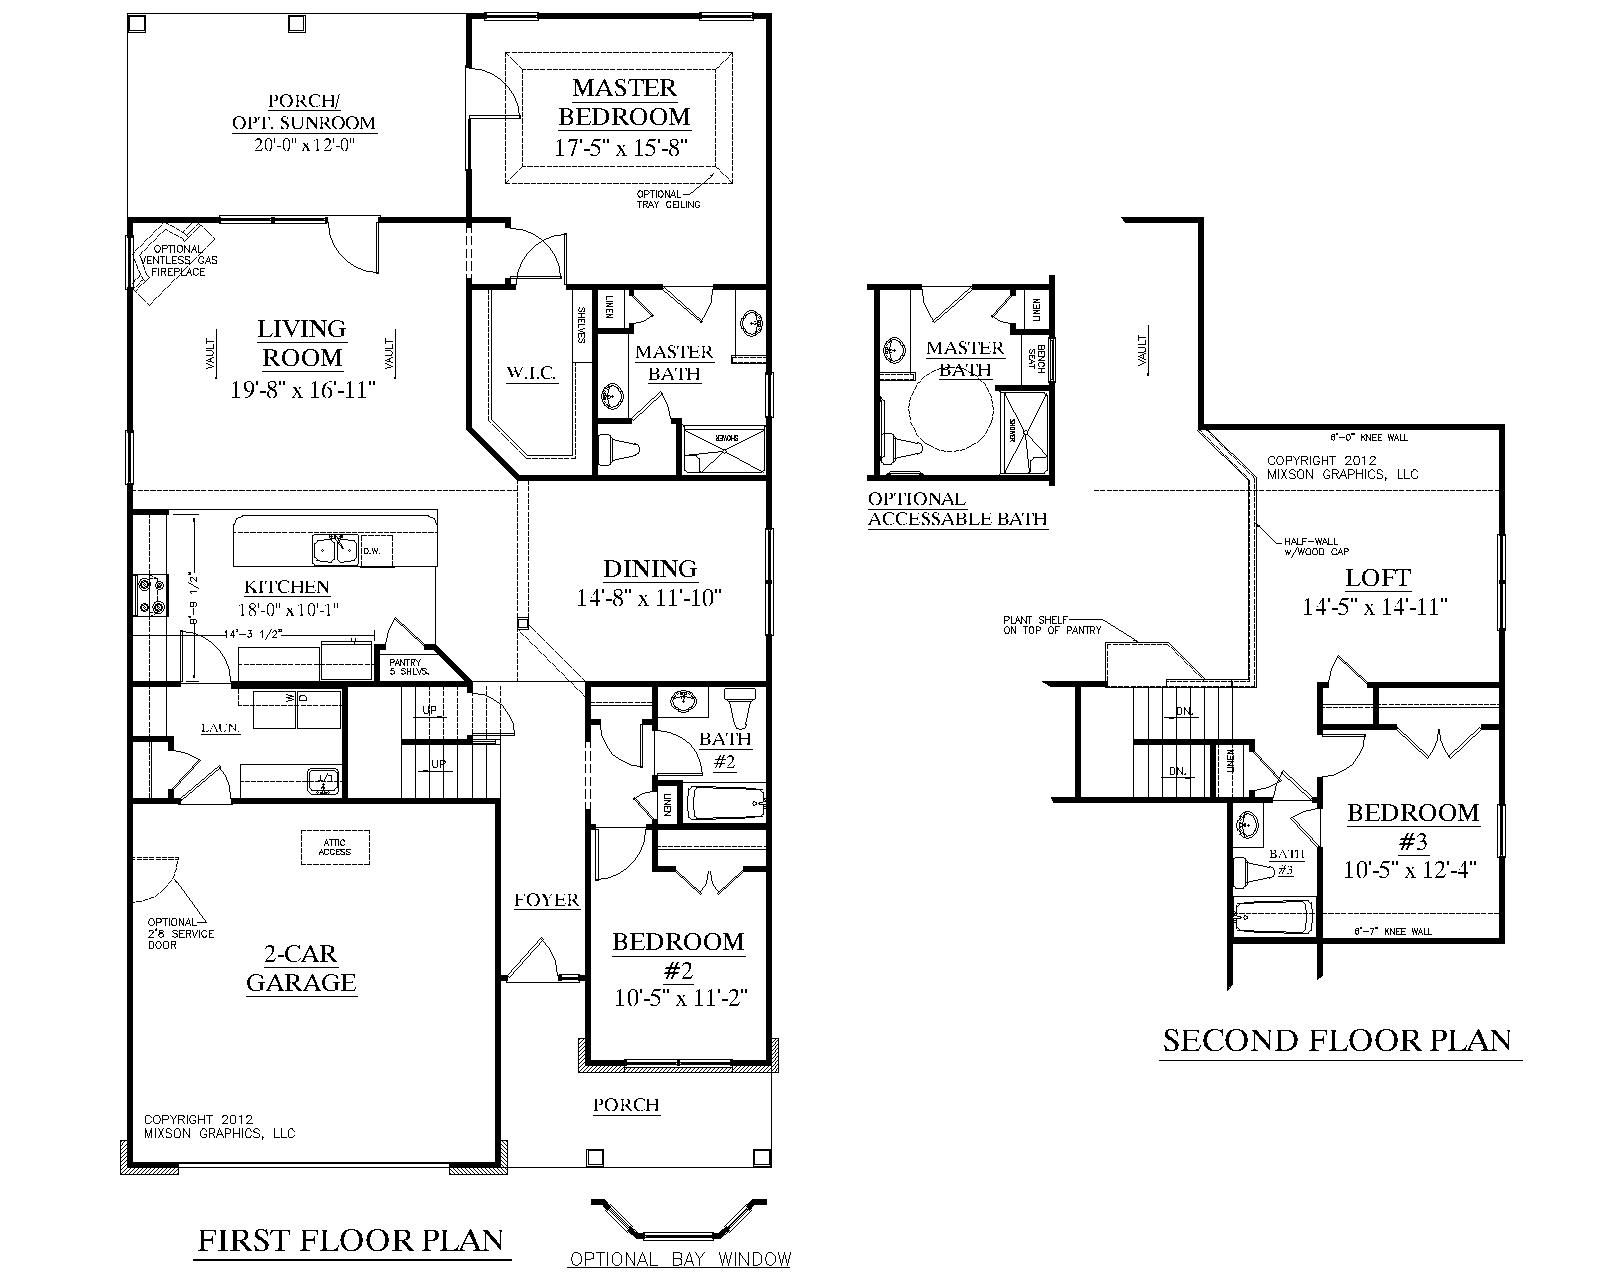 House plan 2224 kingstree floor plan traditional 1 1 2 for Seven bedroom house plans